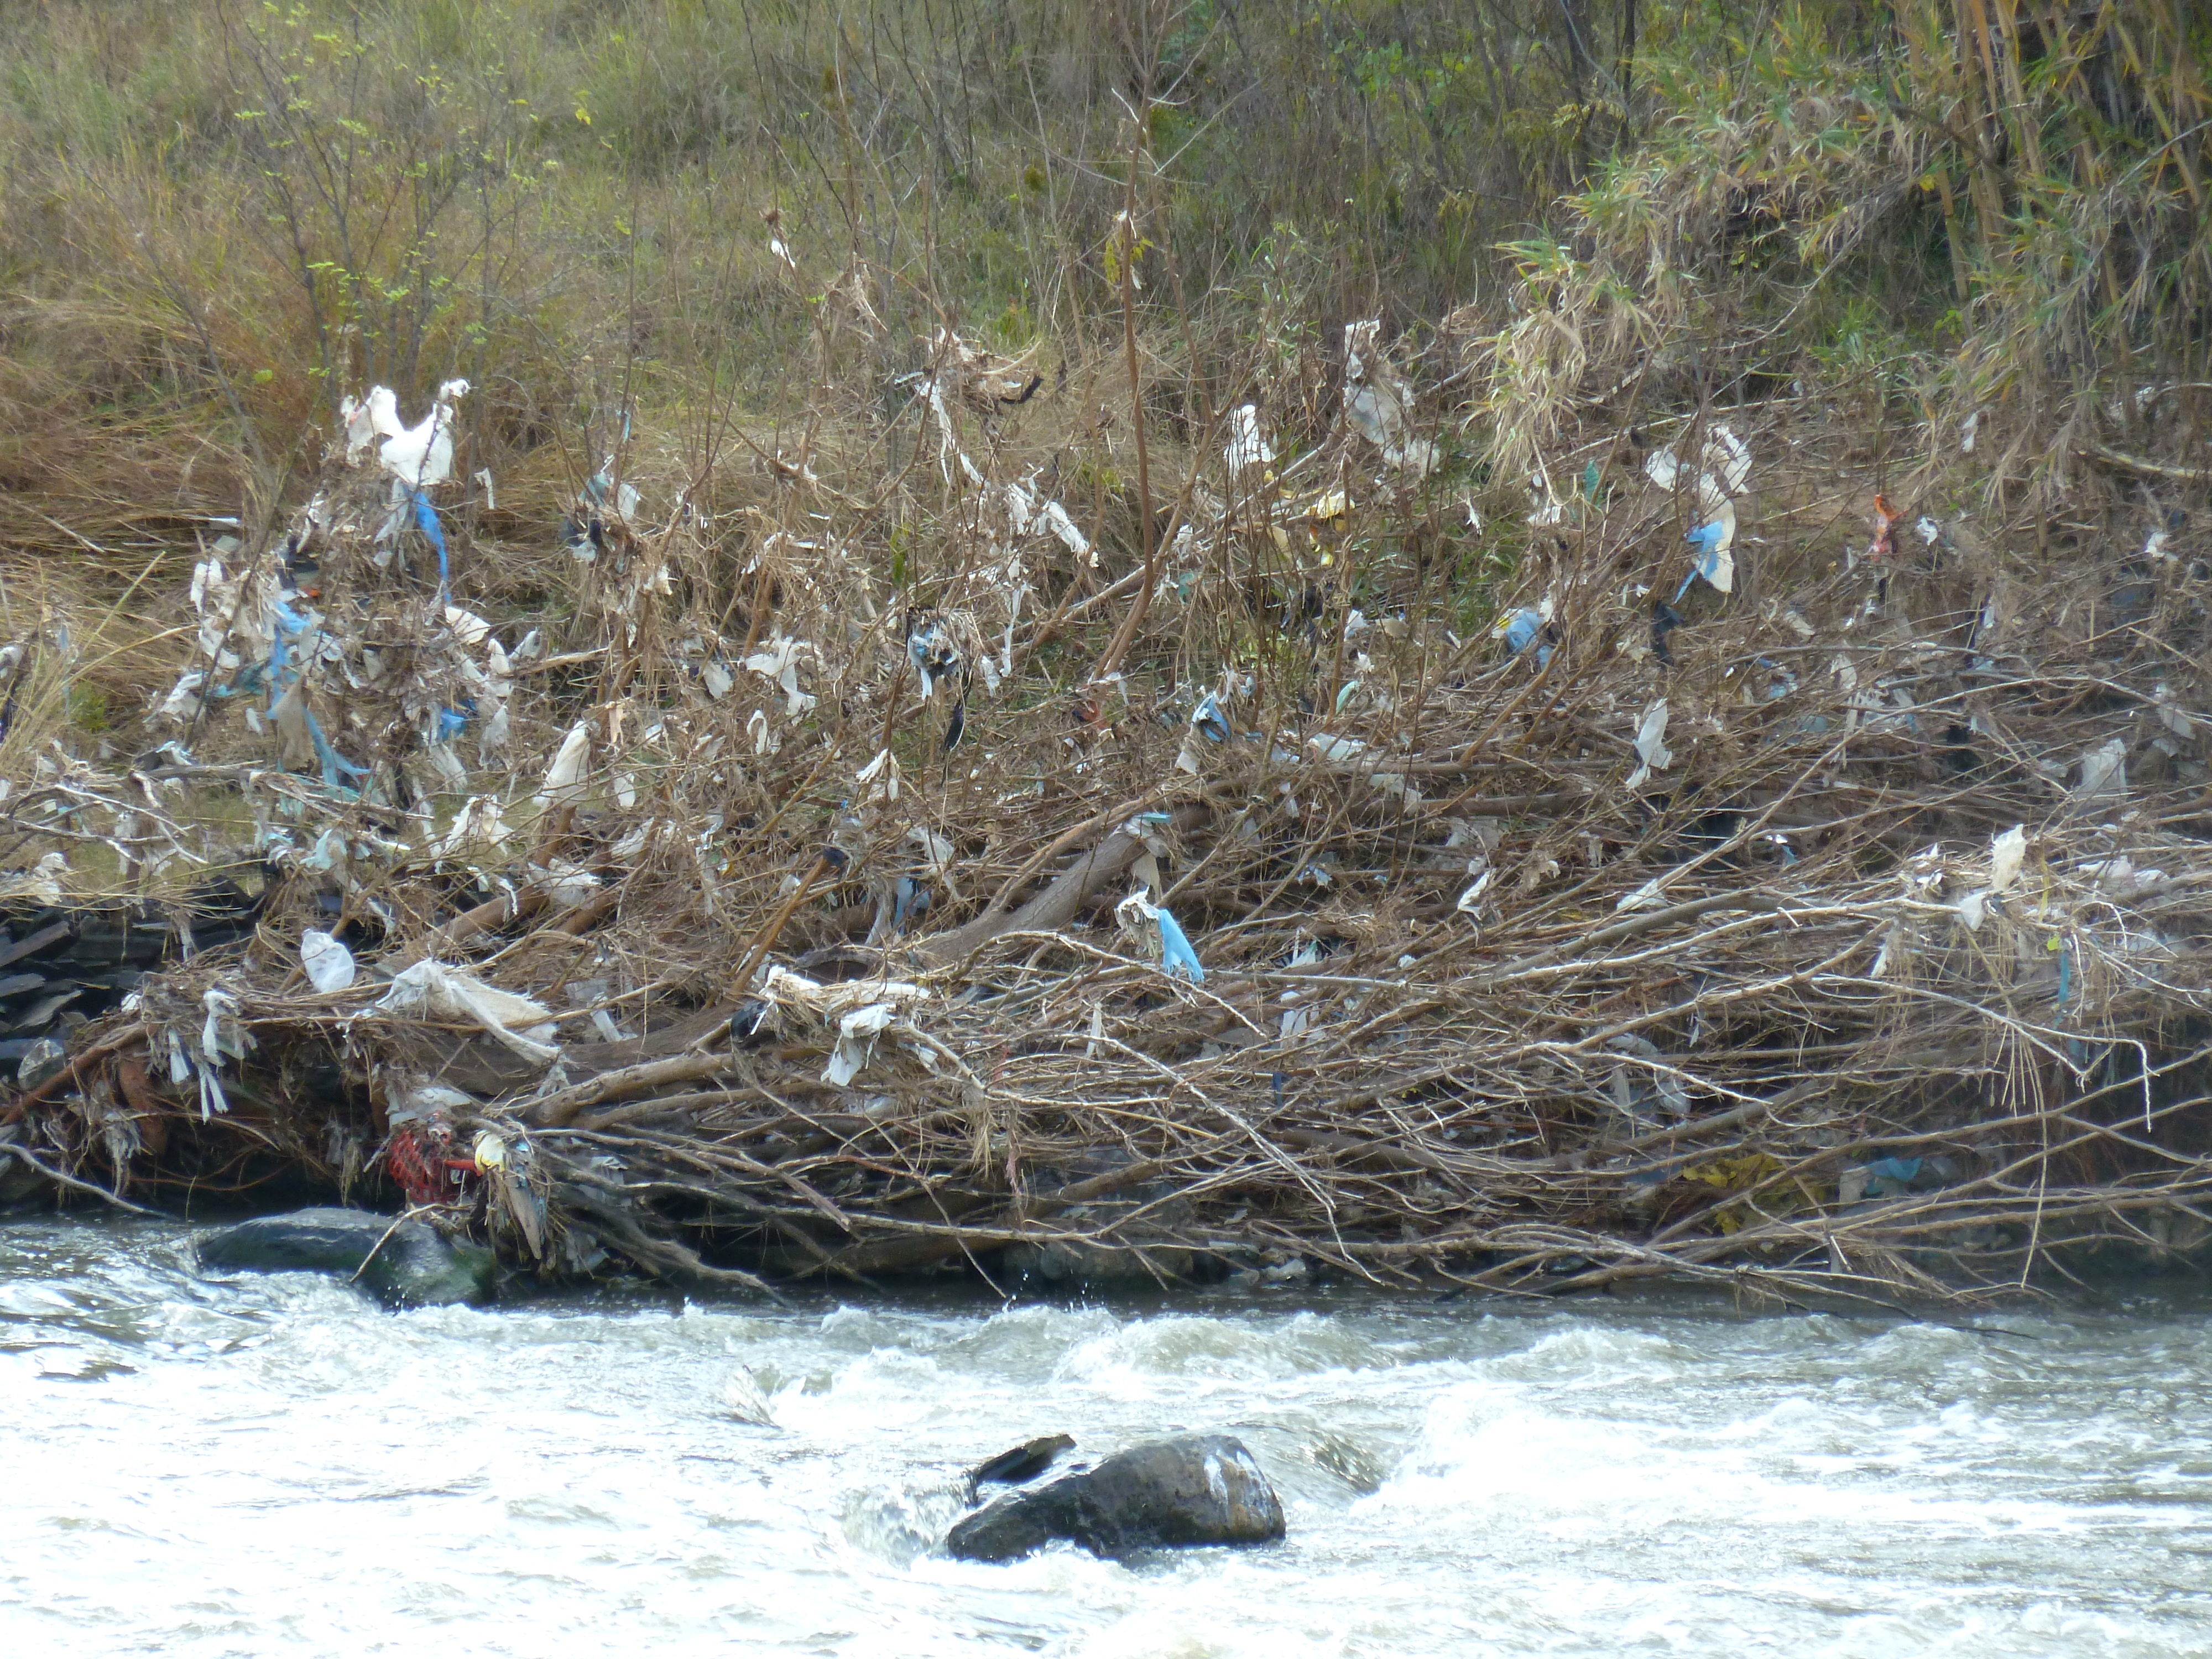 File:Plastic_bag_litter_in_Crocodile_river,_Pelindaba on Ocean Animals